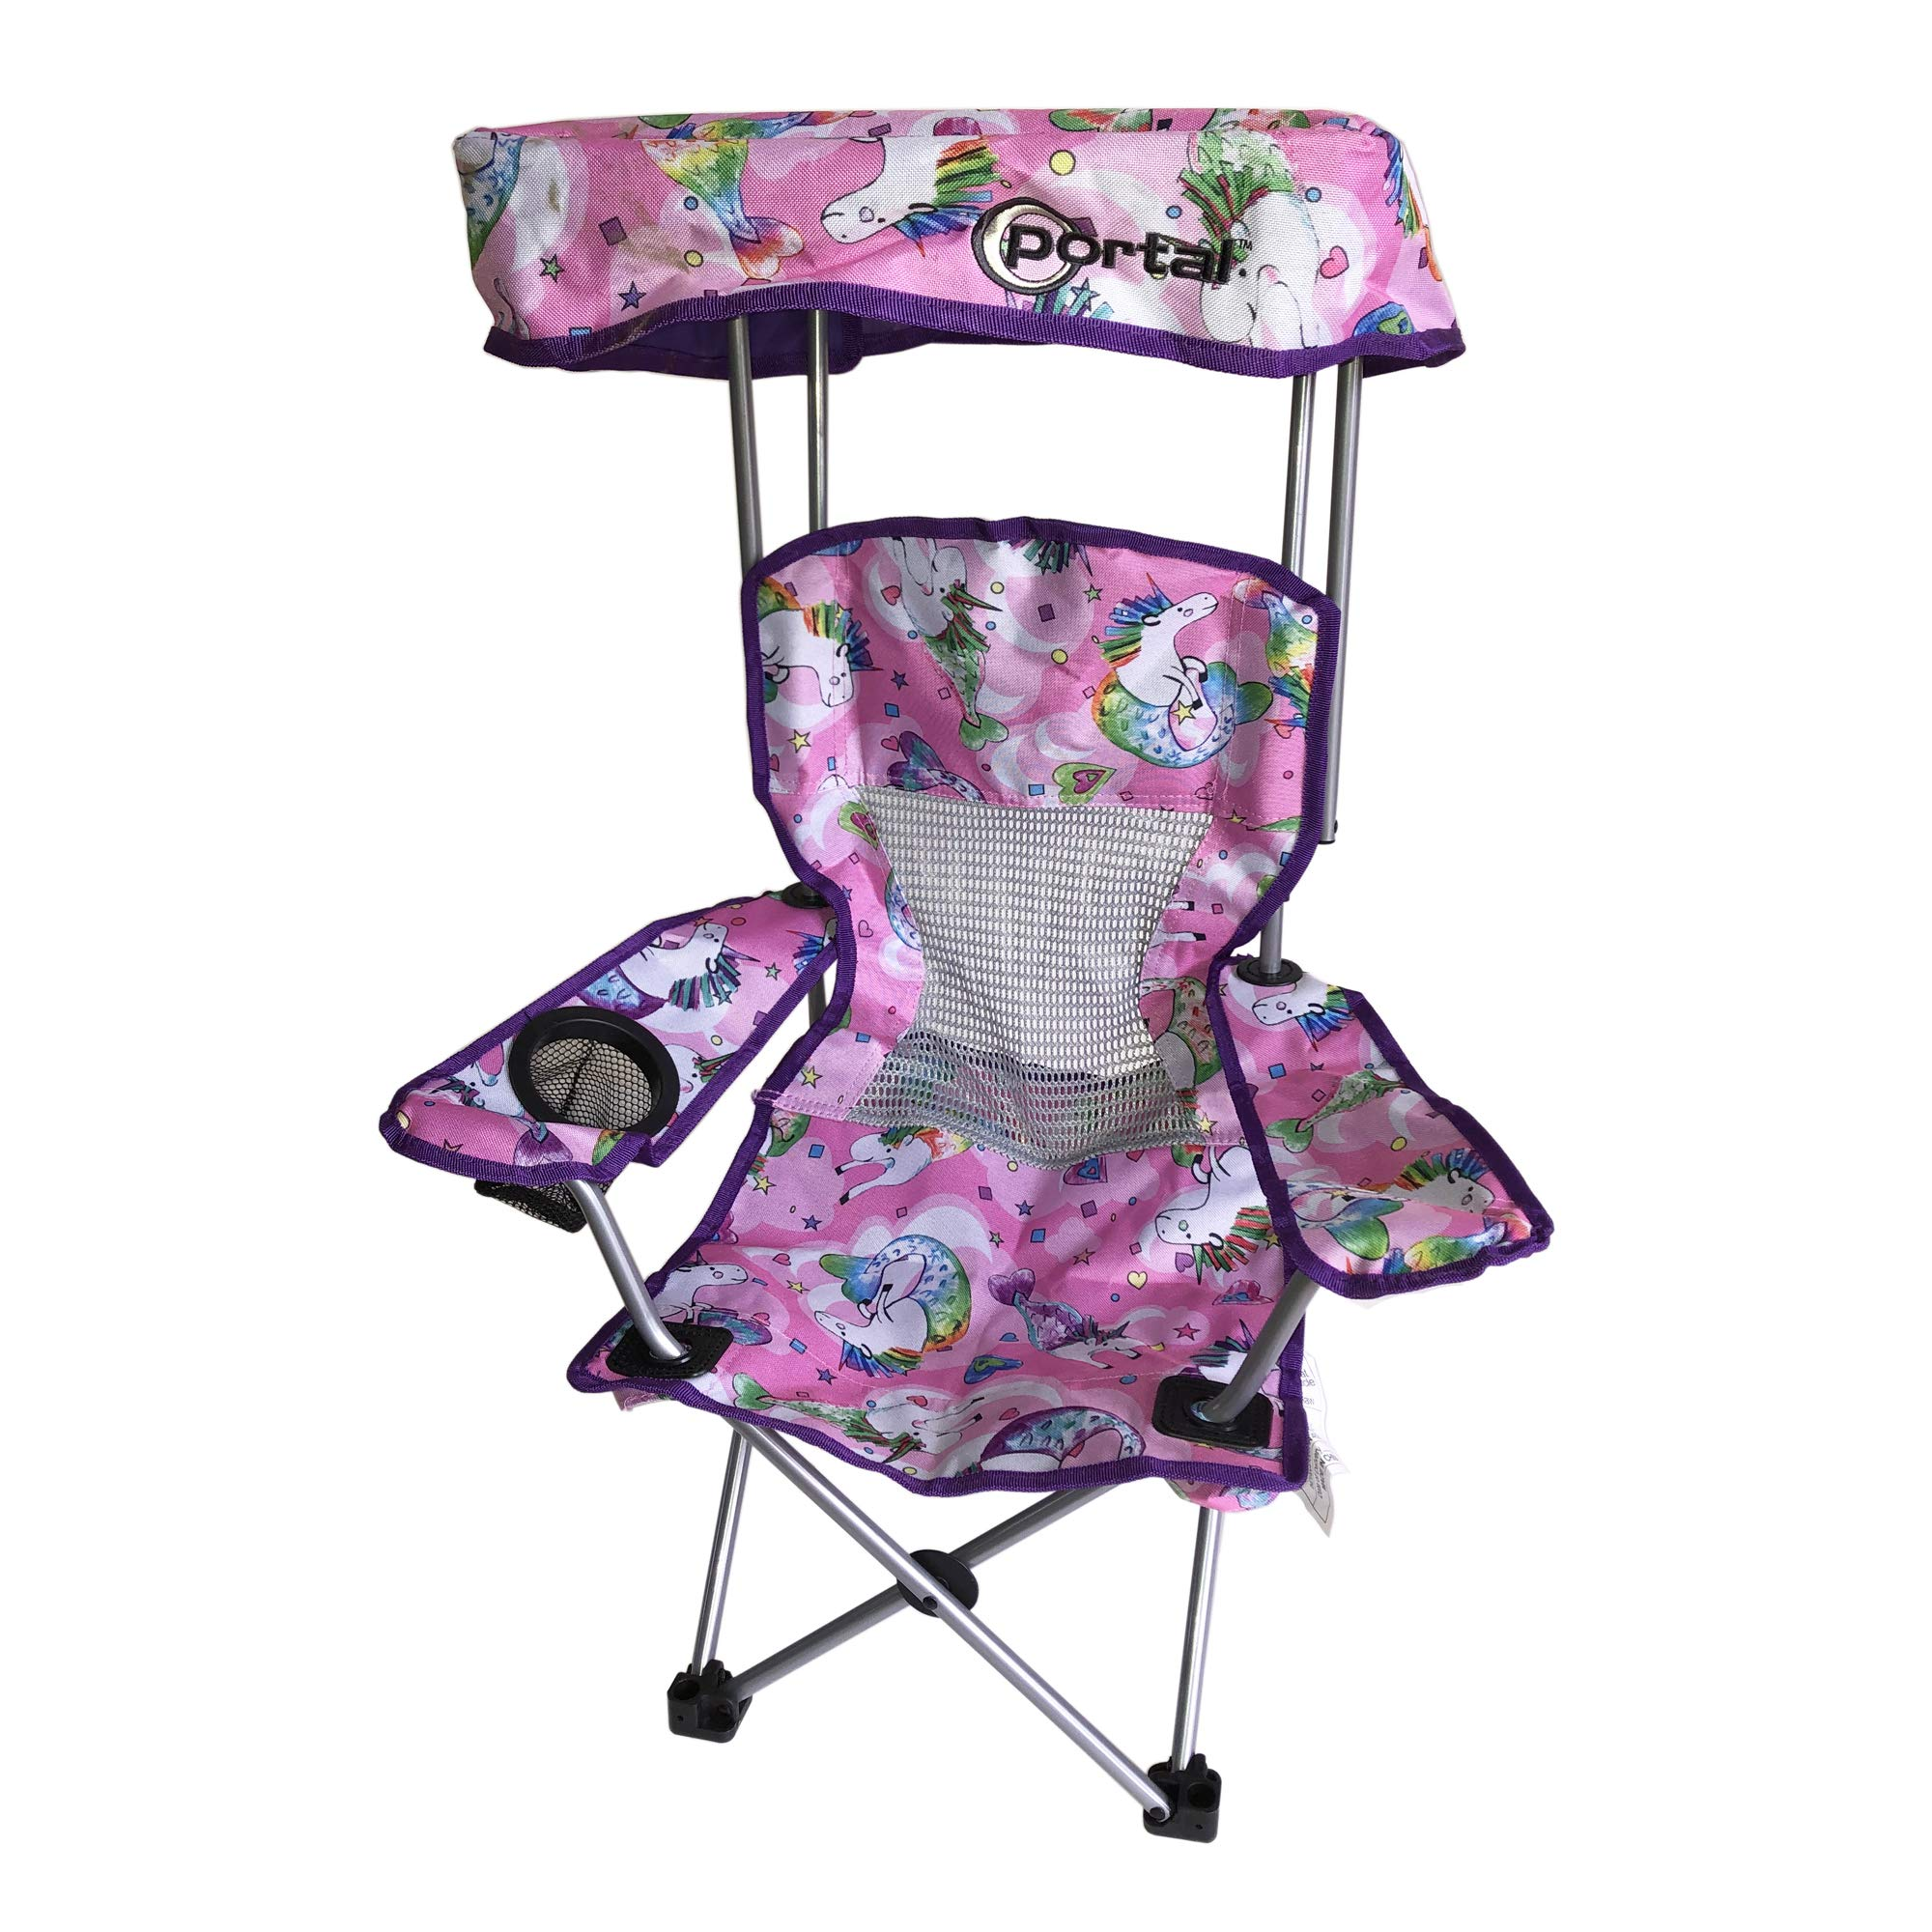 Kid's Folding Chair with Canopy and Durable Carry Bag Purple Unicorn by Westfield Outdoor (Image #3)